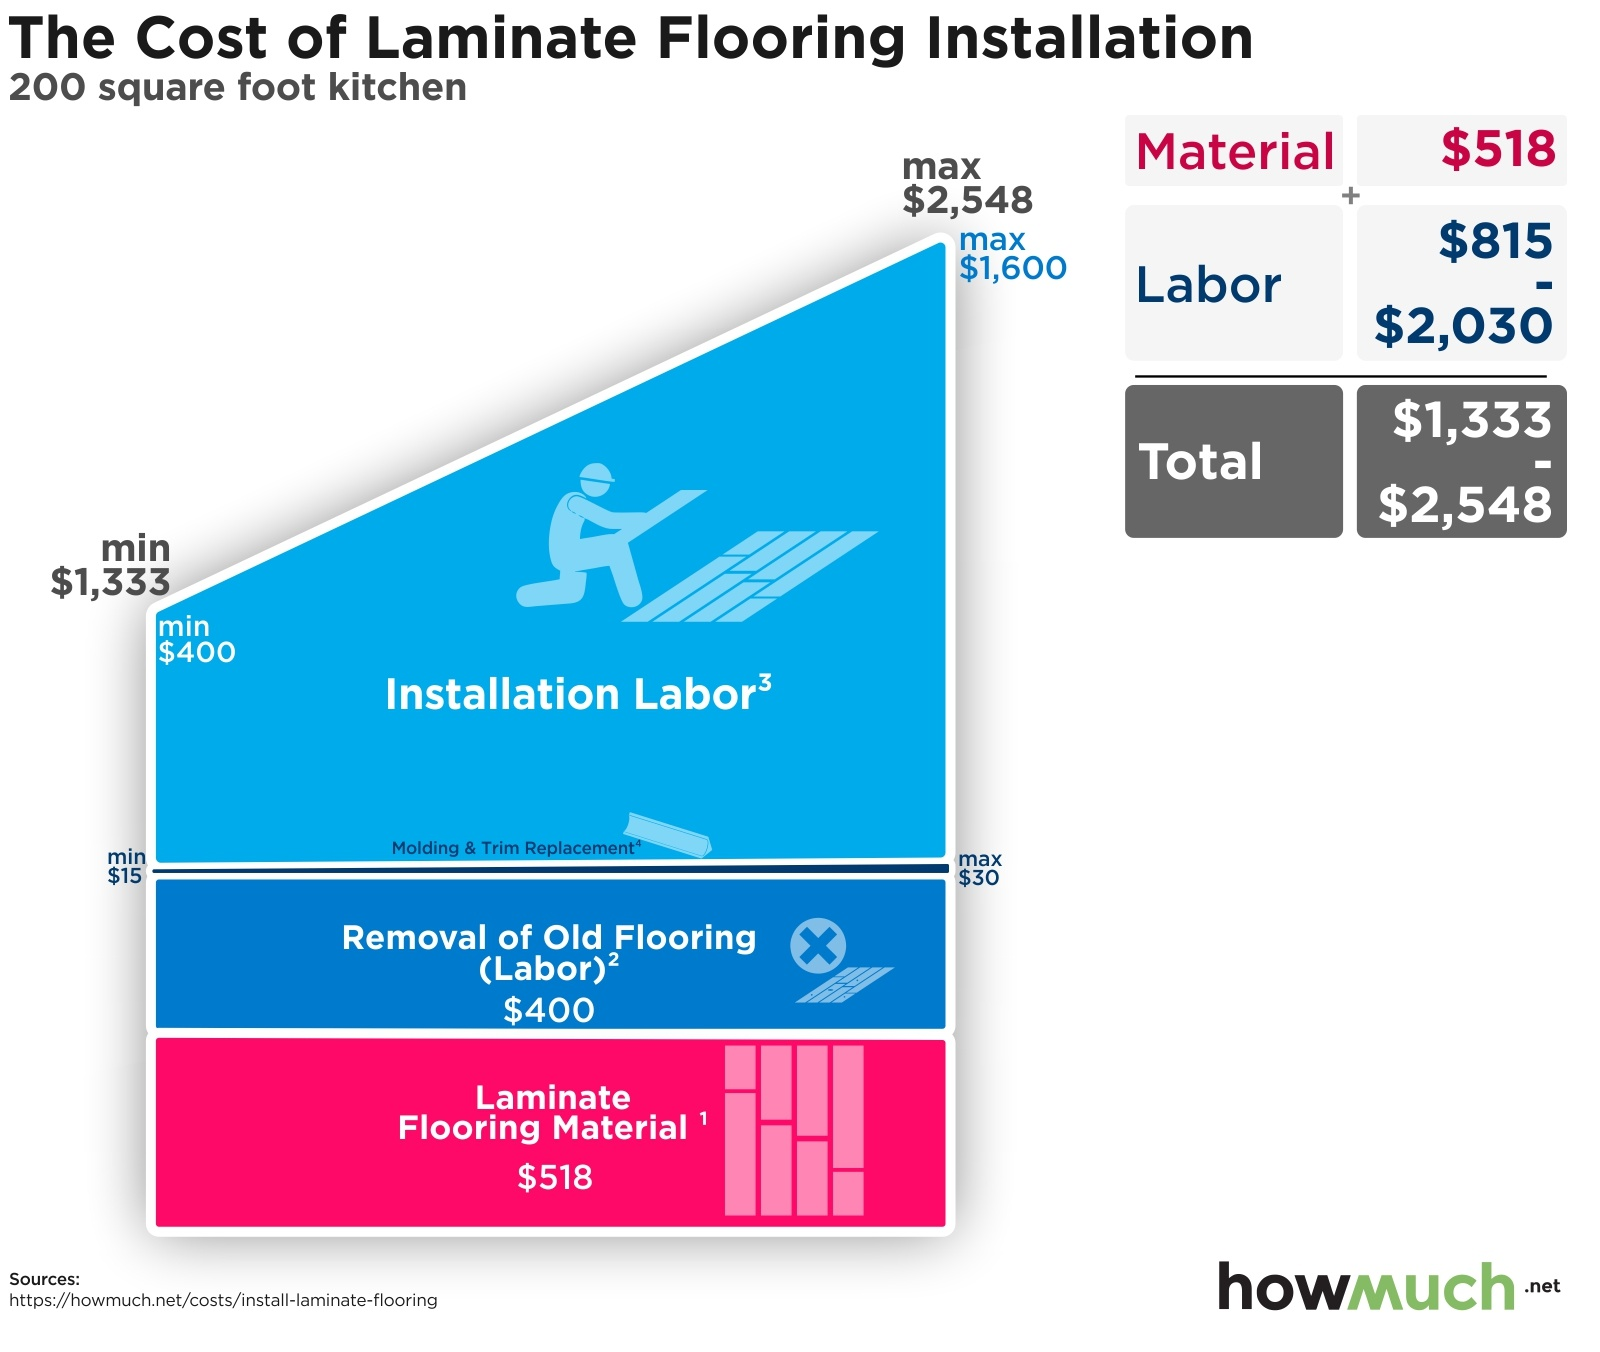 The Cost of Laminate Flooring Installation